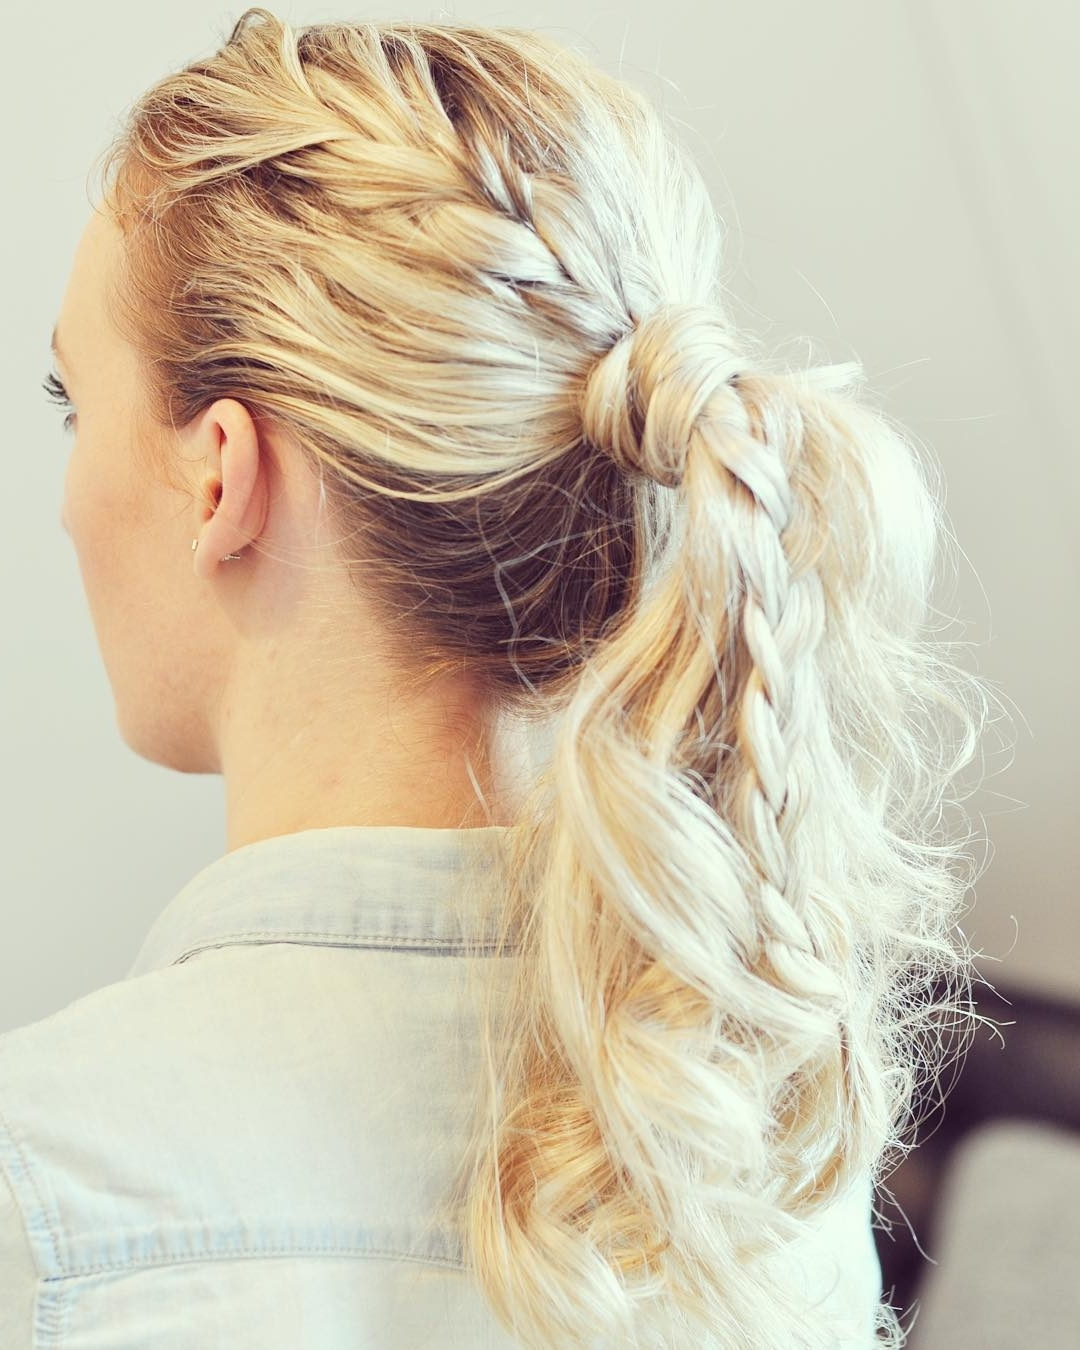 Hairstyle Guru Pertaining To Latest Long Messy Pony With Braid (View 10 of 20)